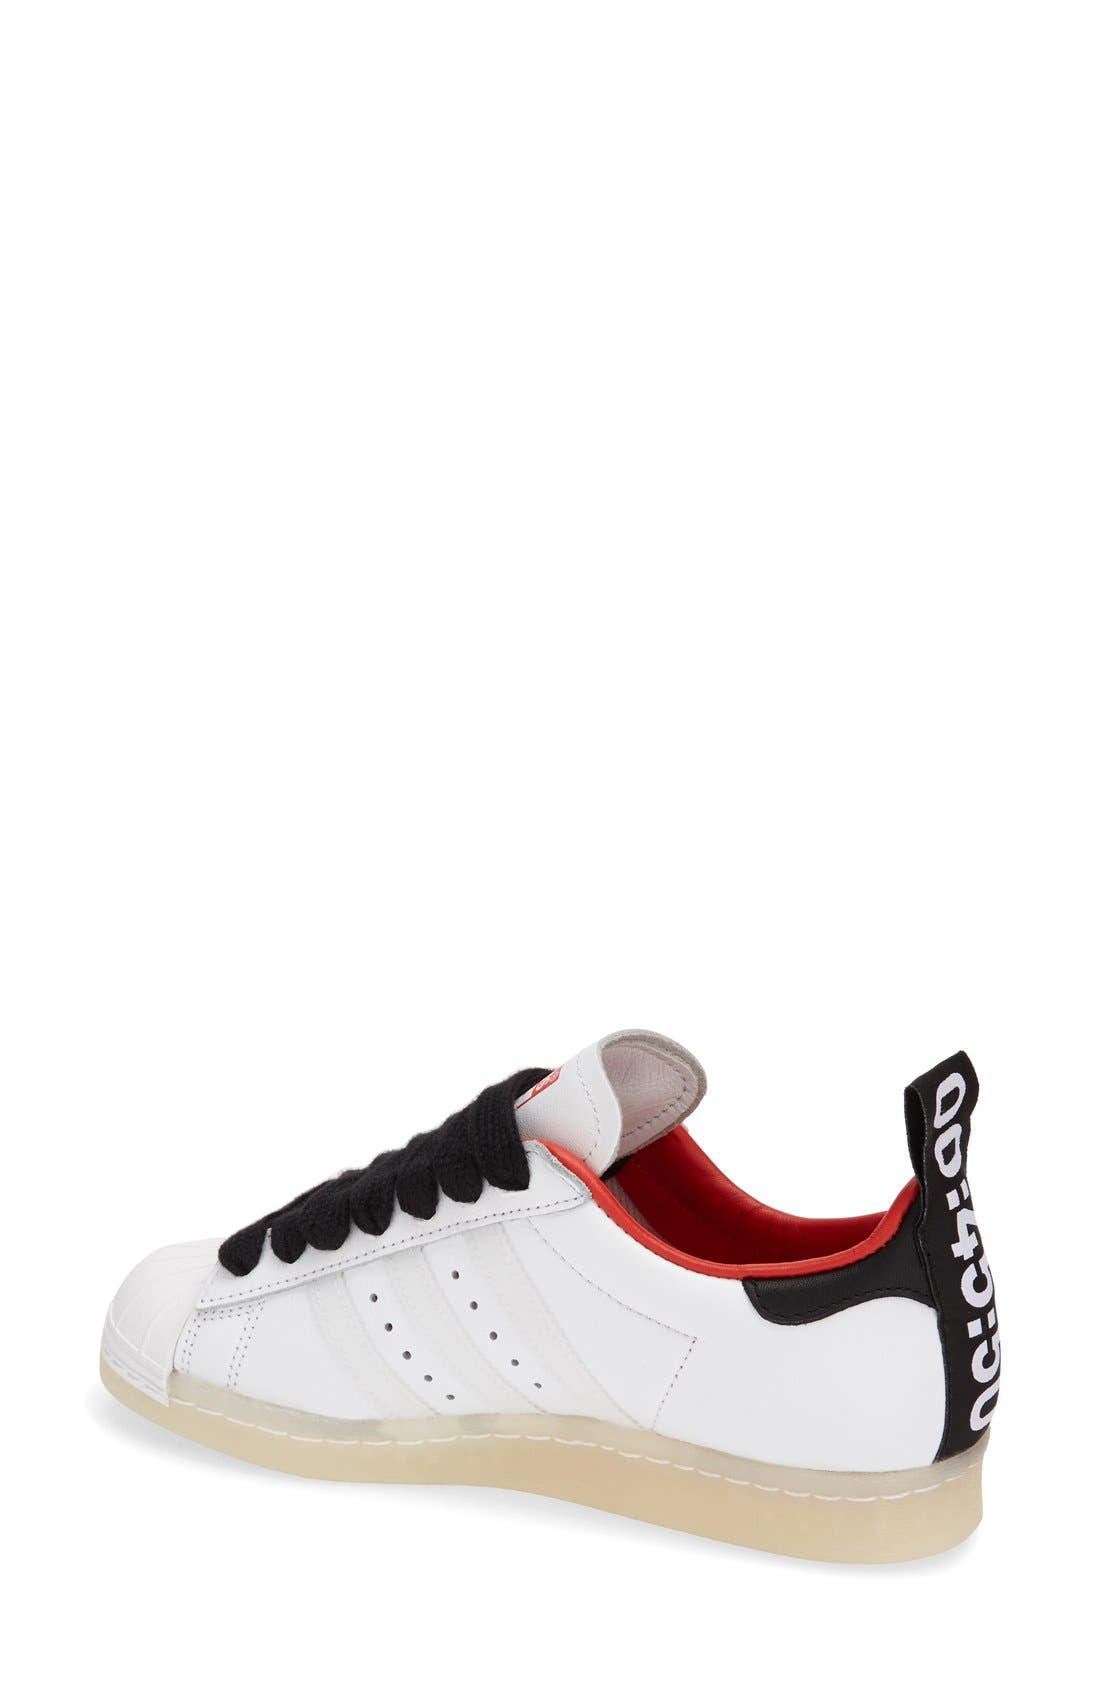 Alternate Image 2  - Topshop for adidas Originals 'Superstar 80s' Leather Sneaker (Women)